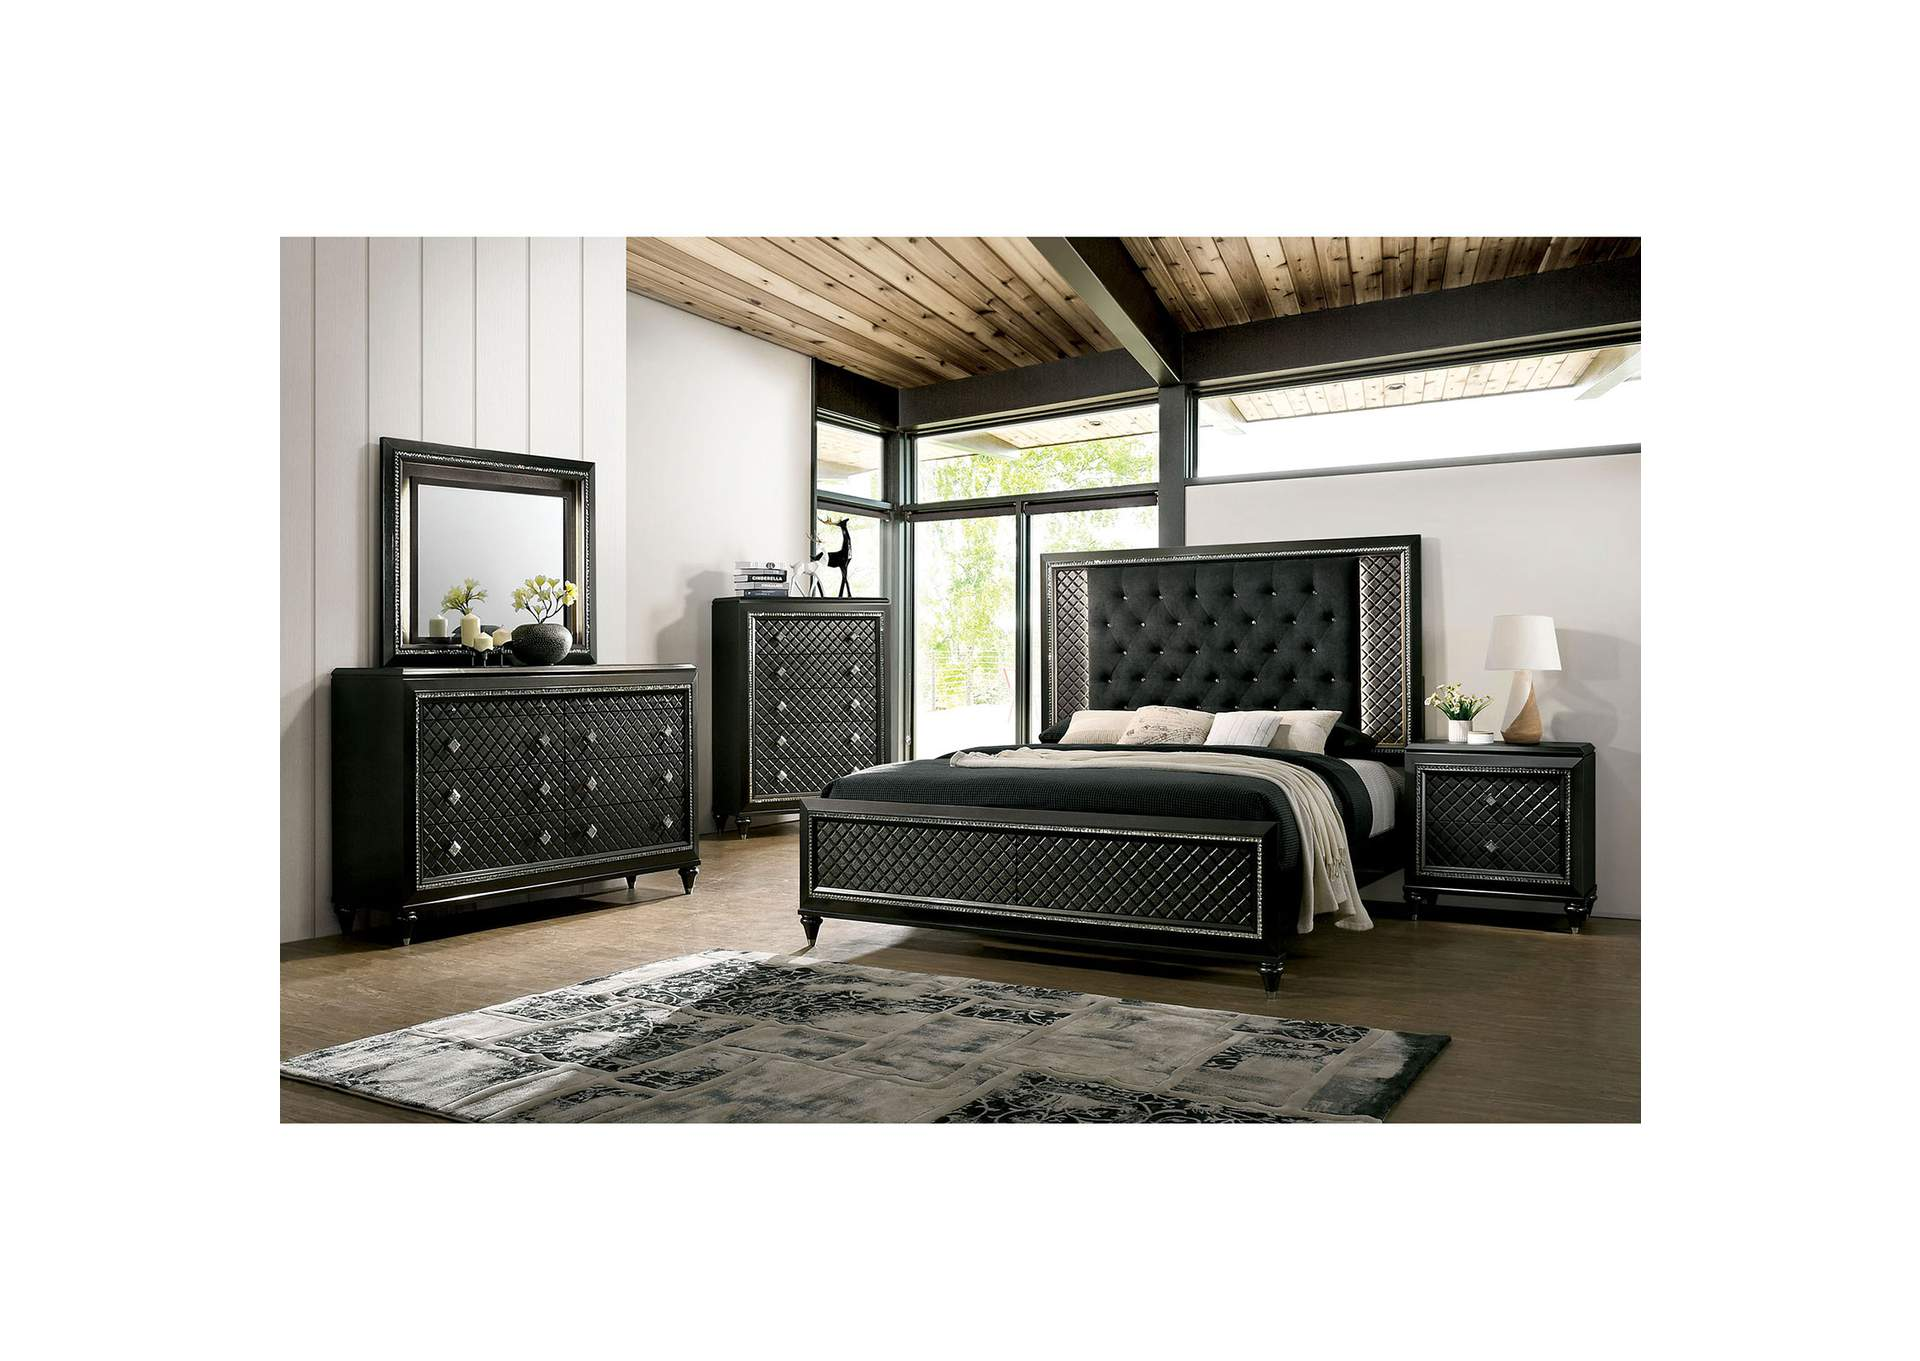 Demetria Black/Metallic Gray LED Eastern King Panel Bed w/Dresser and Mirror,Furniture of America